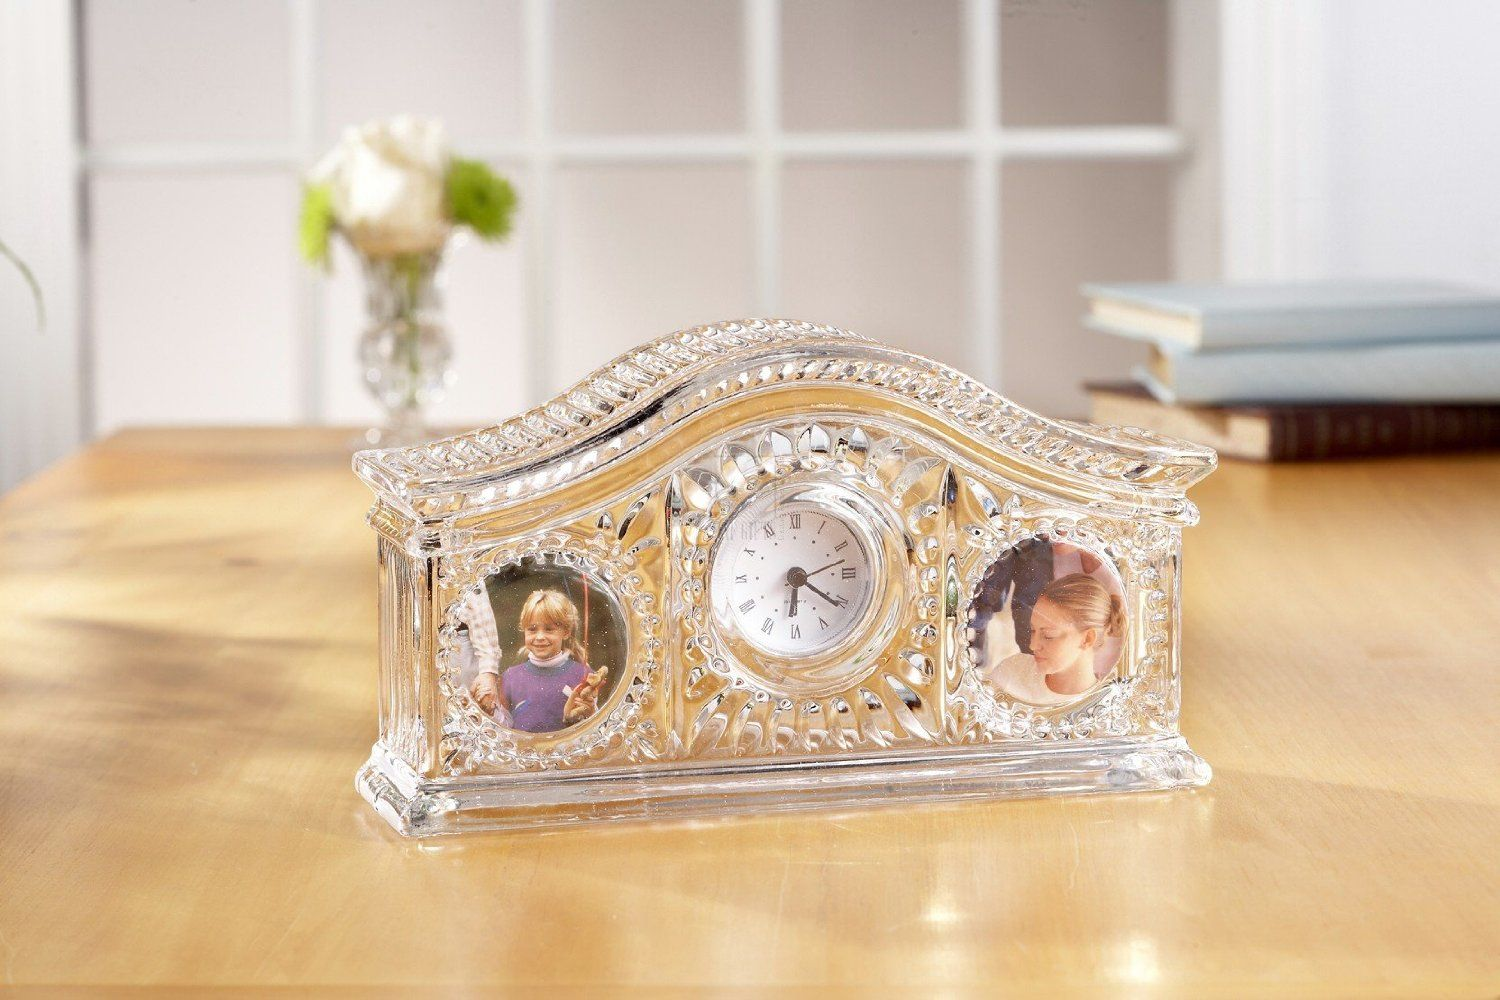 Fifth Avenue Crystal Picture Frame Desk Clock 32.00